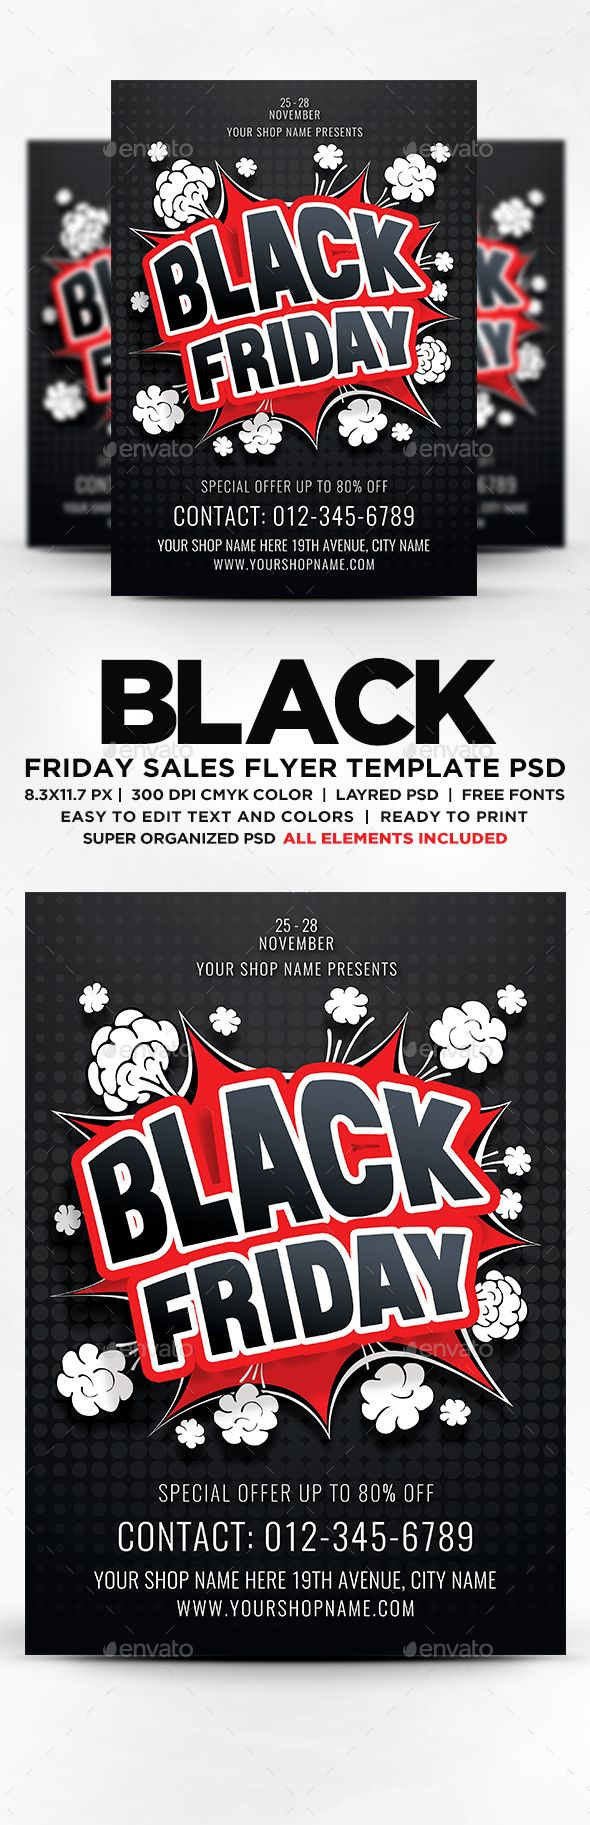 Black Friday Sales Flyer  Psd Template Inspiration Poster